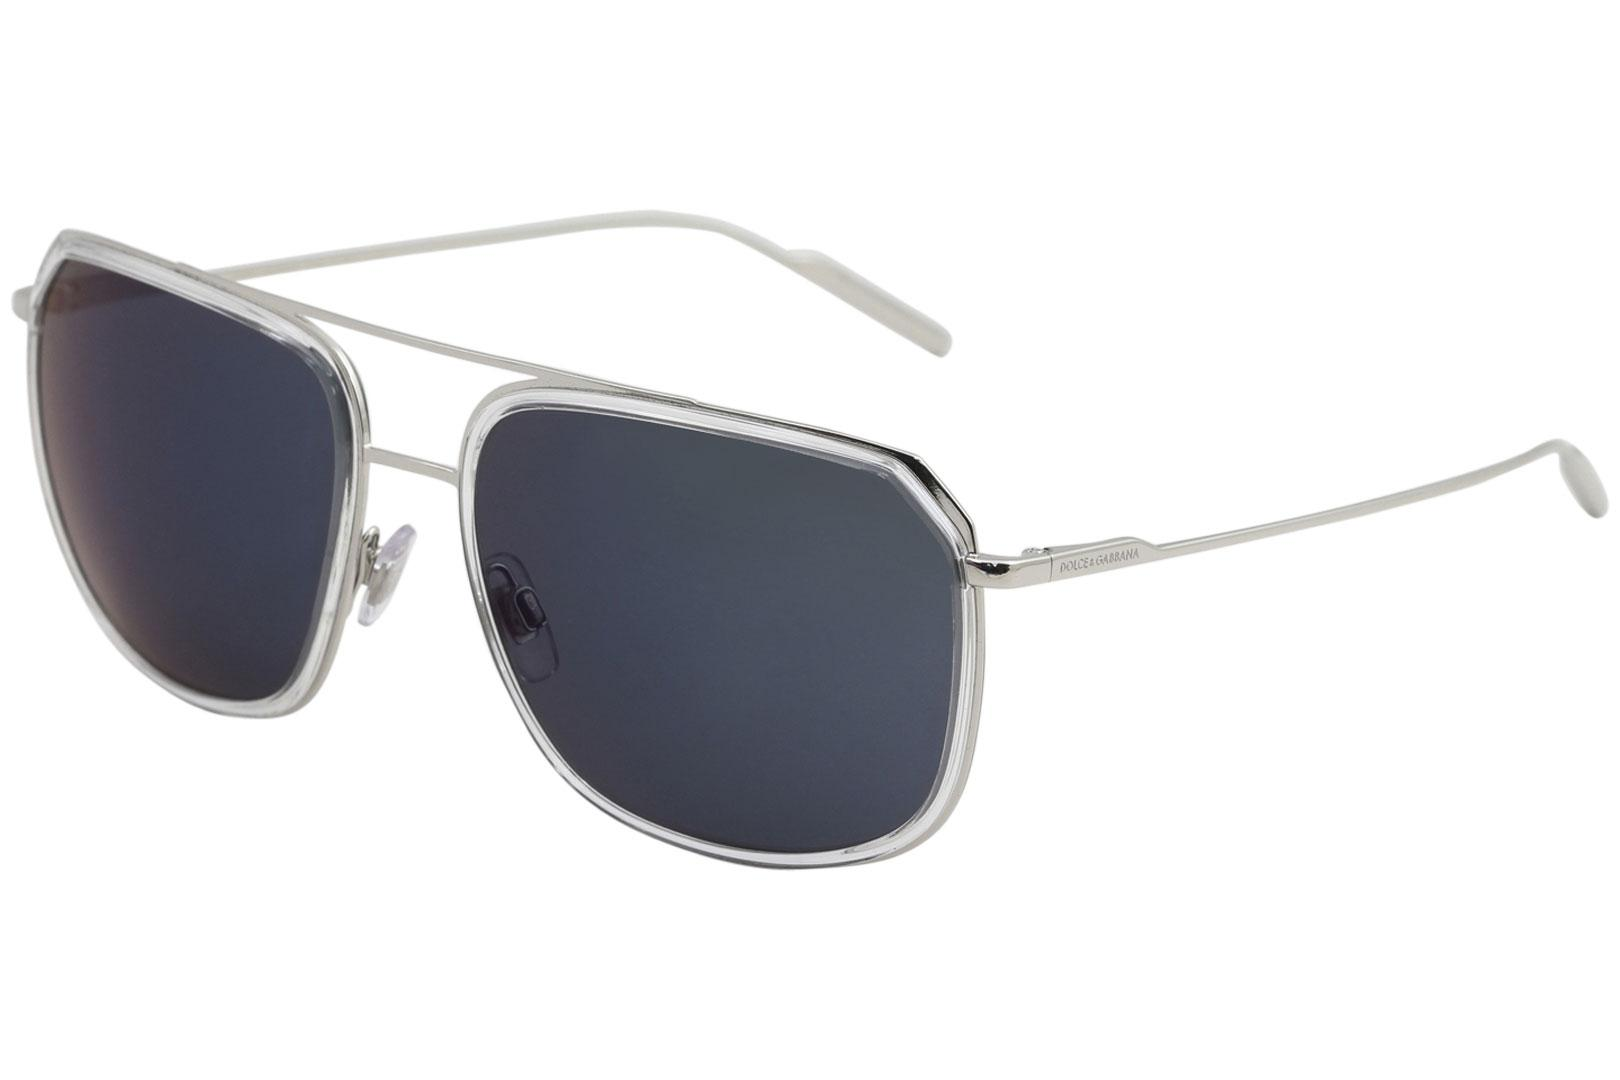 17a30d5000 Ray Ban Uae 998 59 « One More Soul